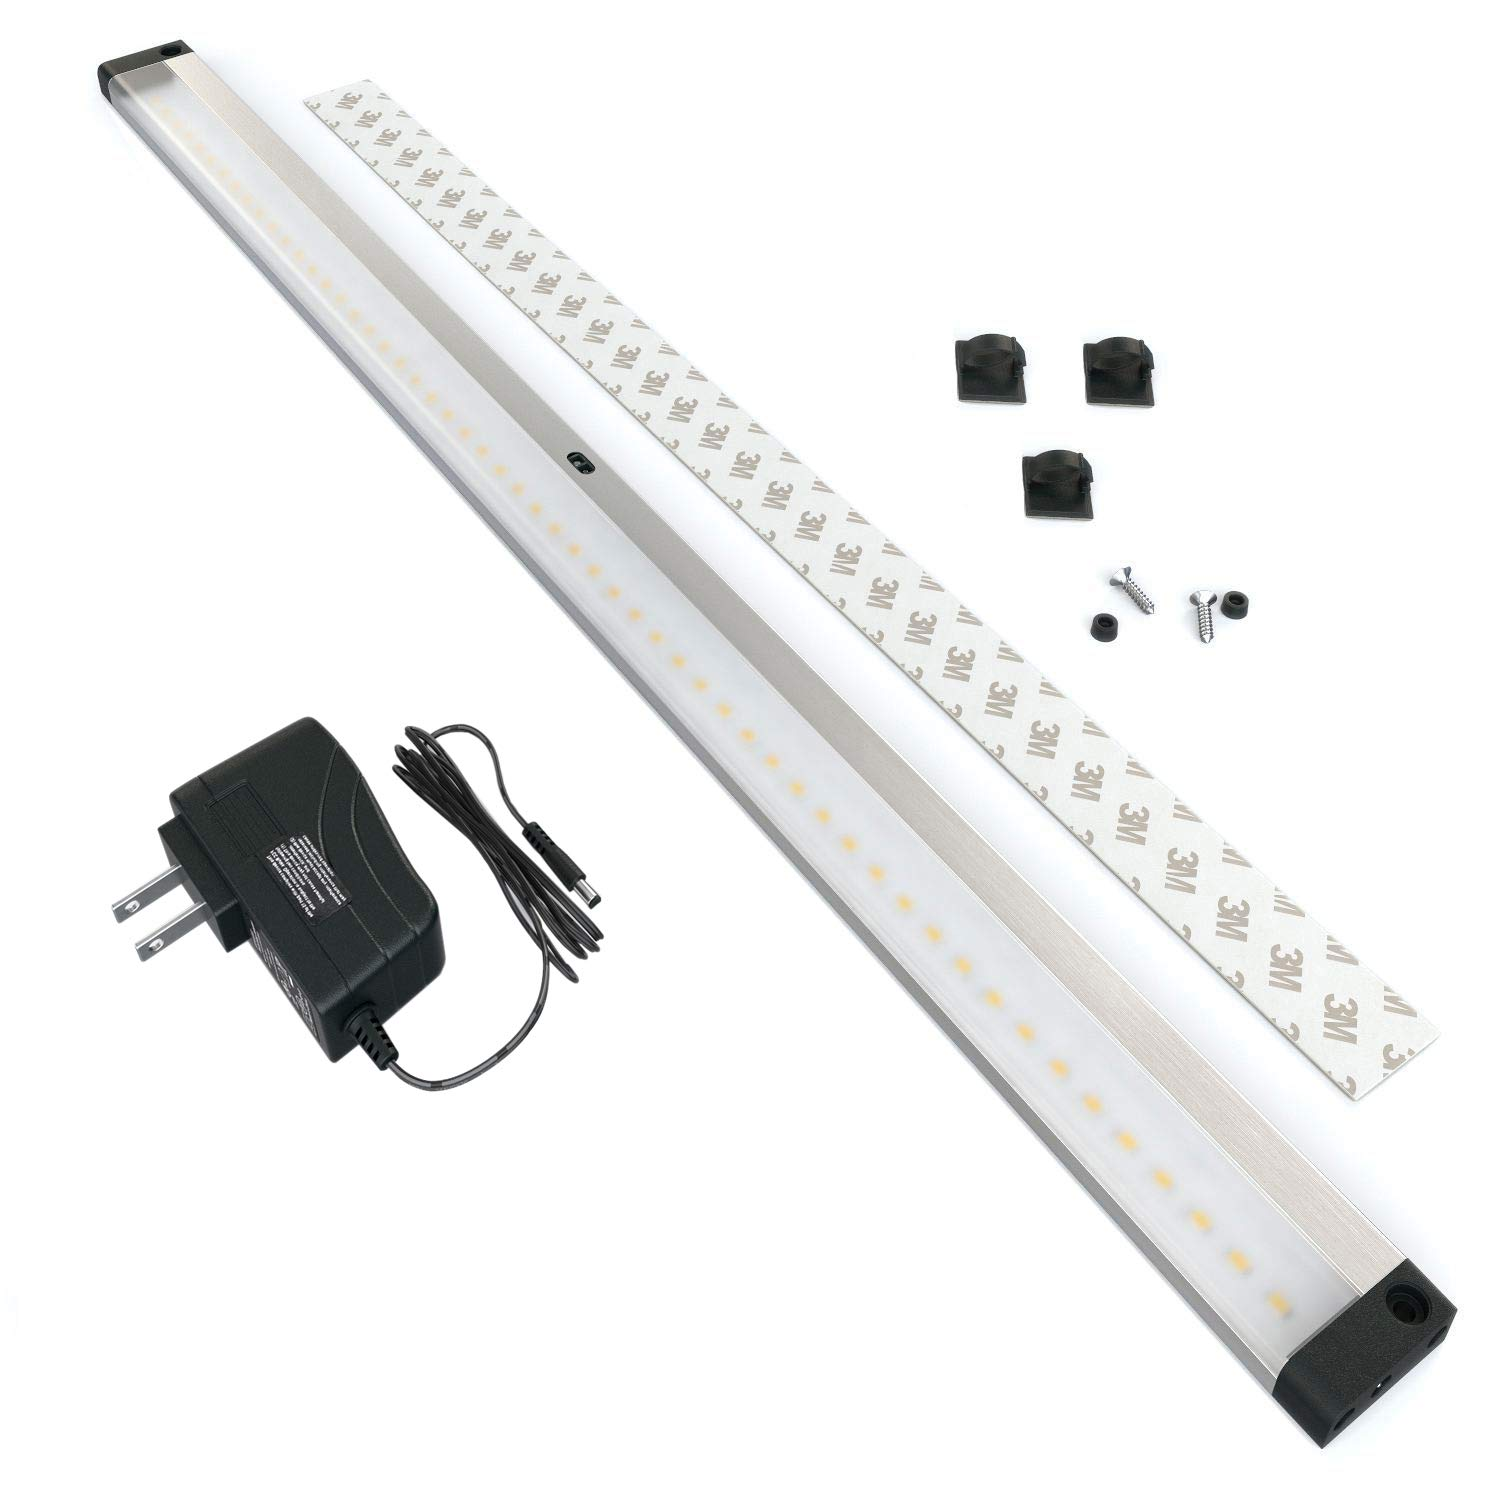 EShine LED Dimmable Under Cabinet Lighting - Extra Long 20 Inch Panel, Hand Wave Activated - Touchless Dimming Control, Cool White (6000K) by EShine